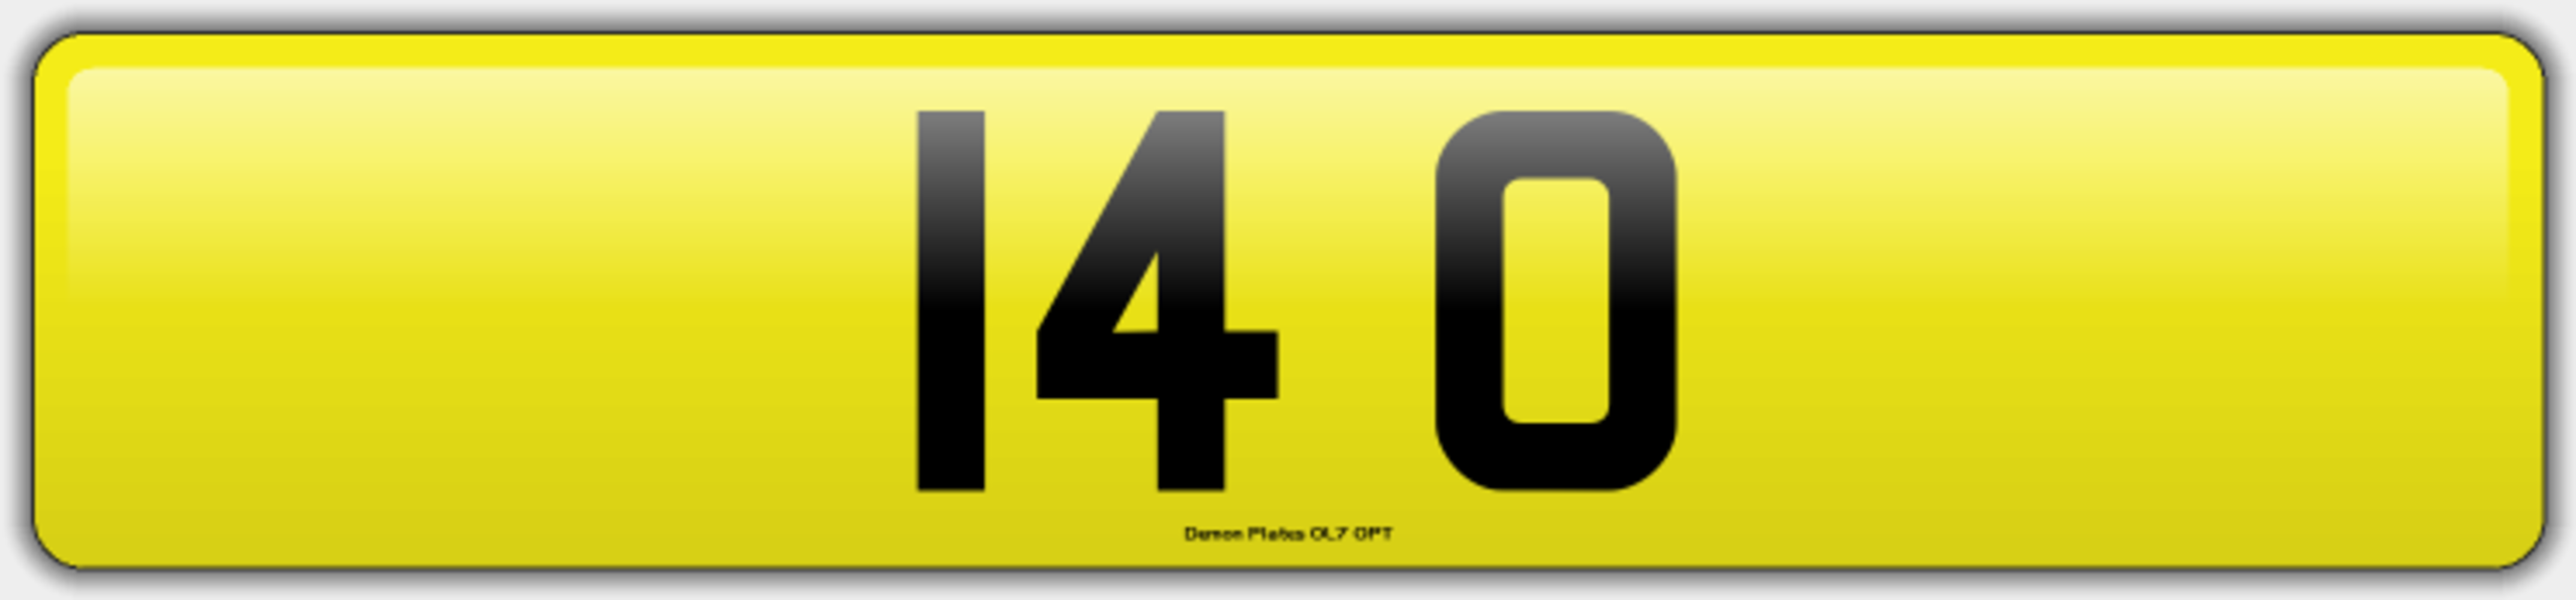 20 HIGHLY DESIRABLE CHERISHED REGISTRATION NUMBERS